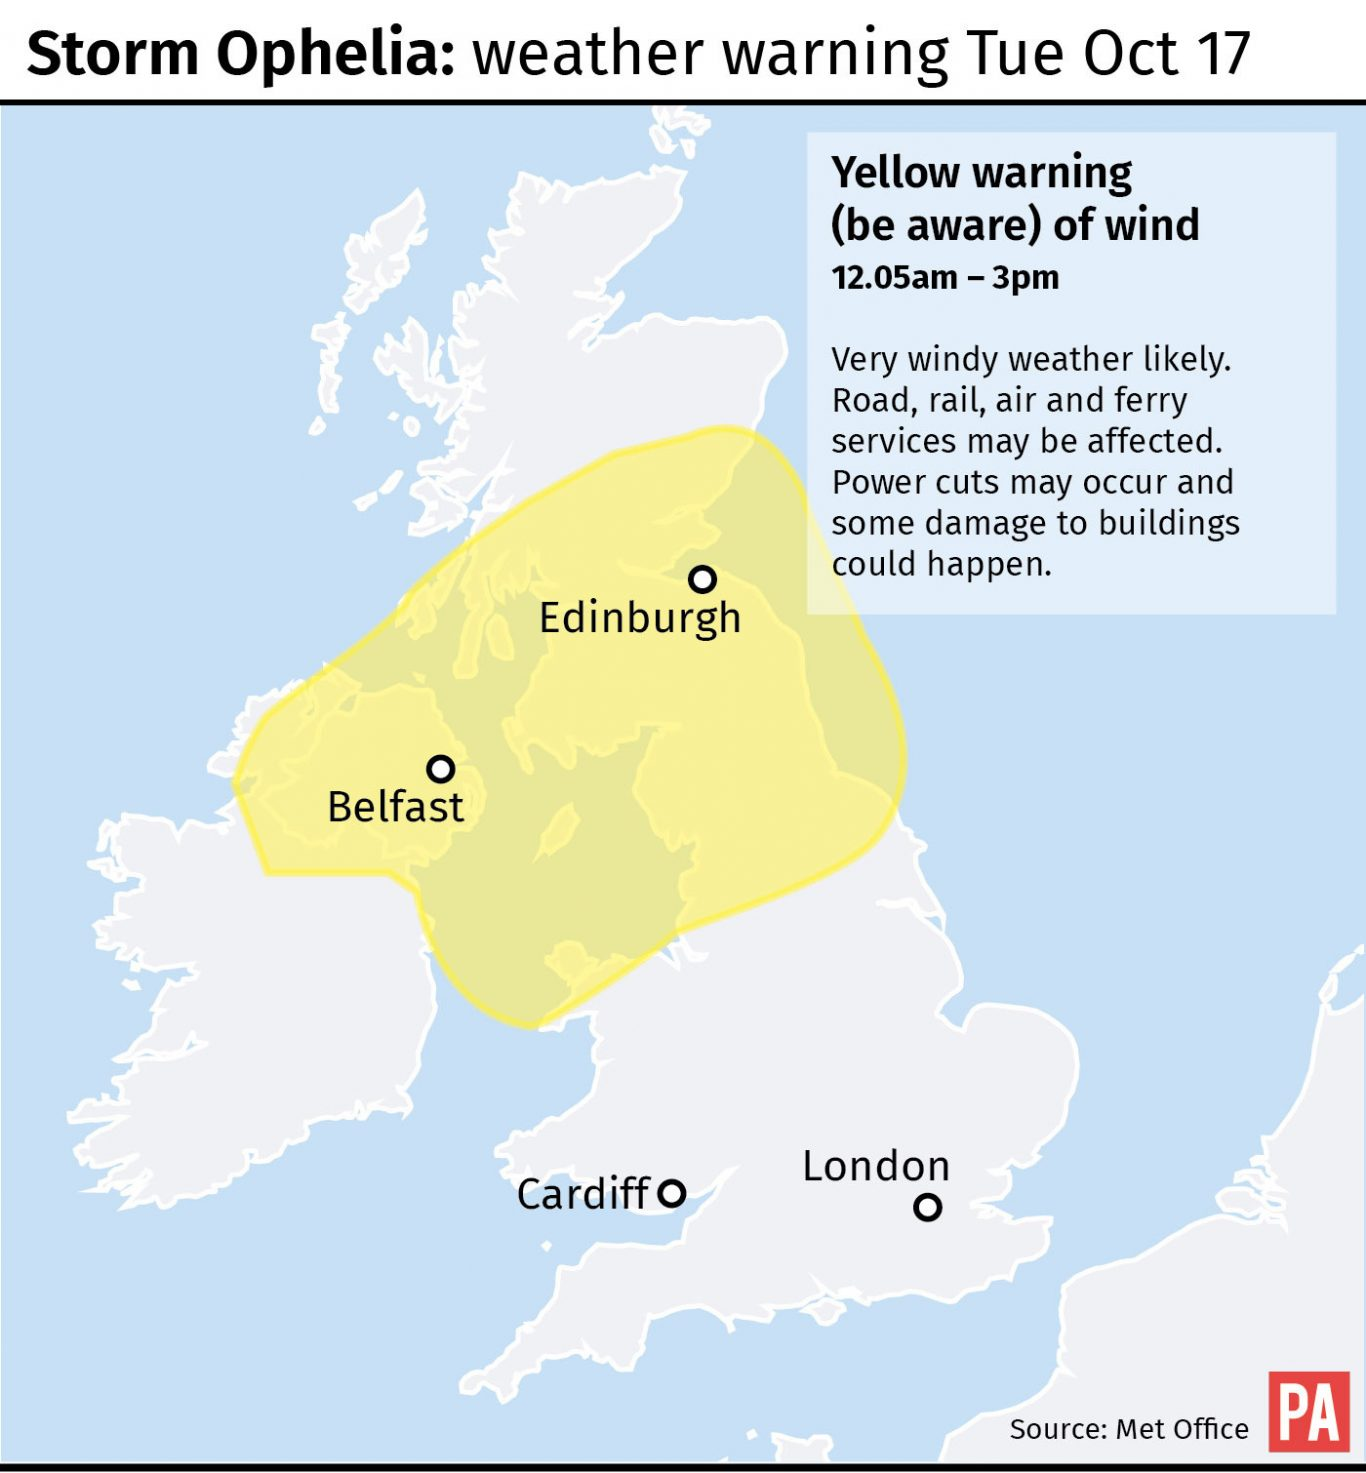 Graphic maps yellow warning of wind from the Met Office